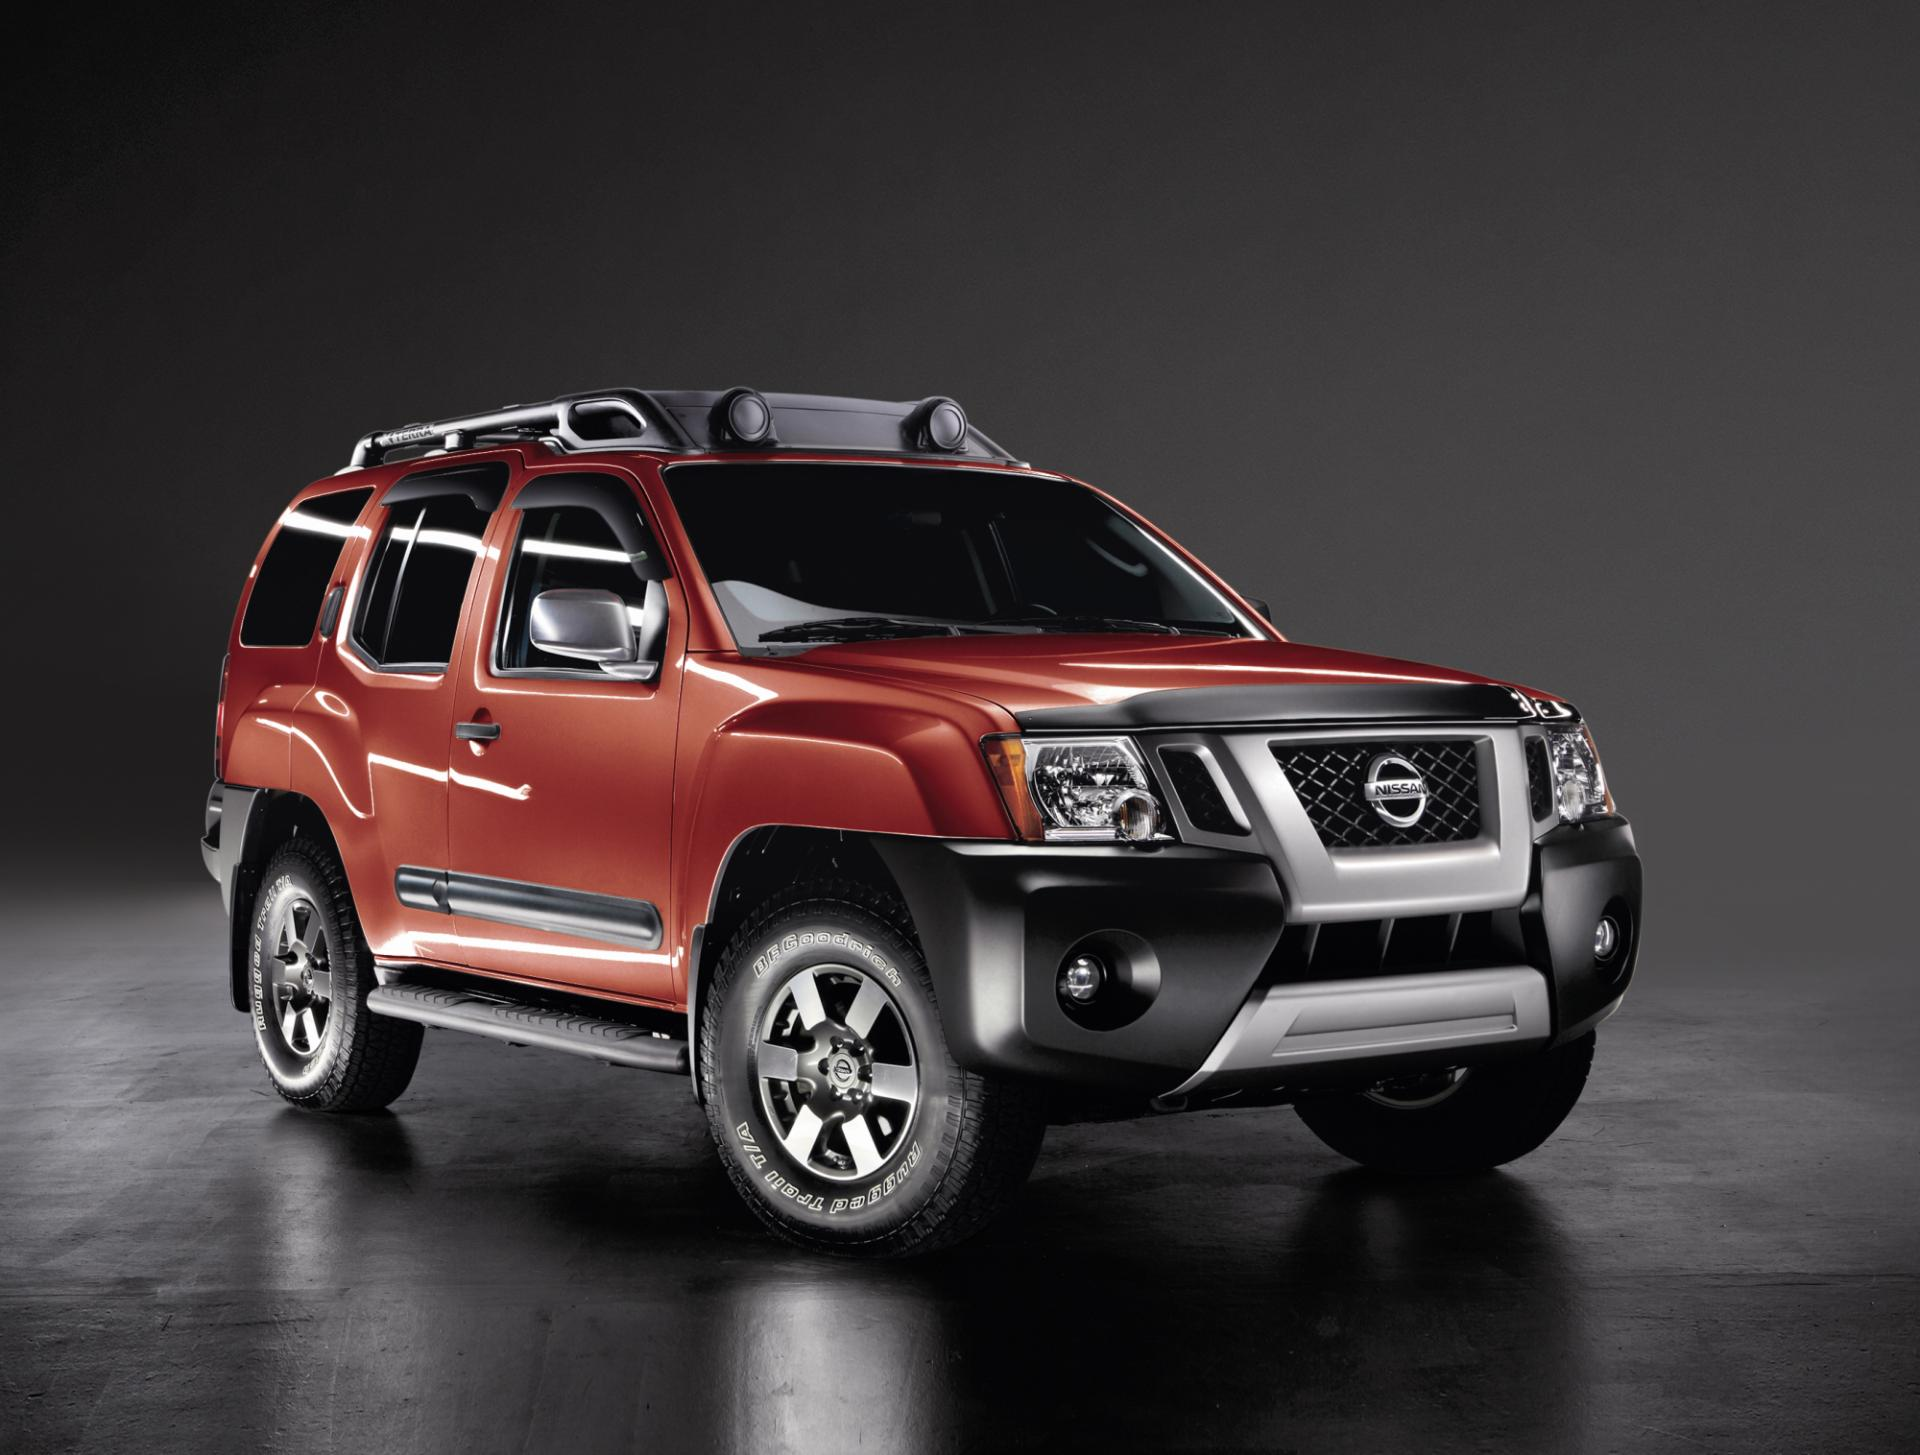 2014 nissan xterra. Black Bedroom Furniture Sets. Home Design Ideas